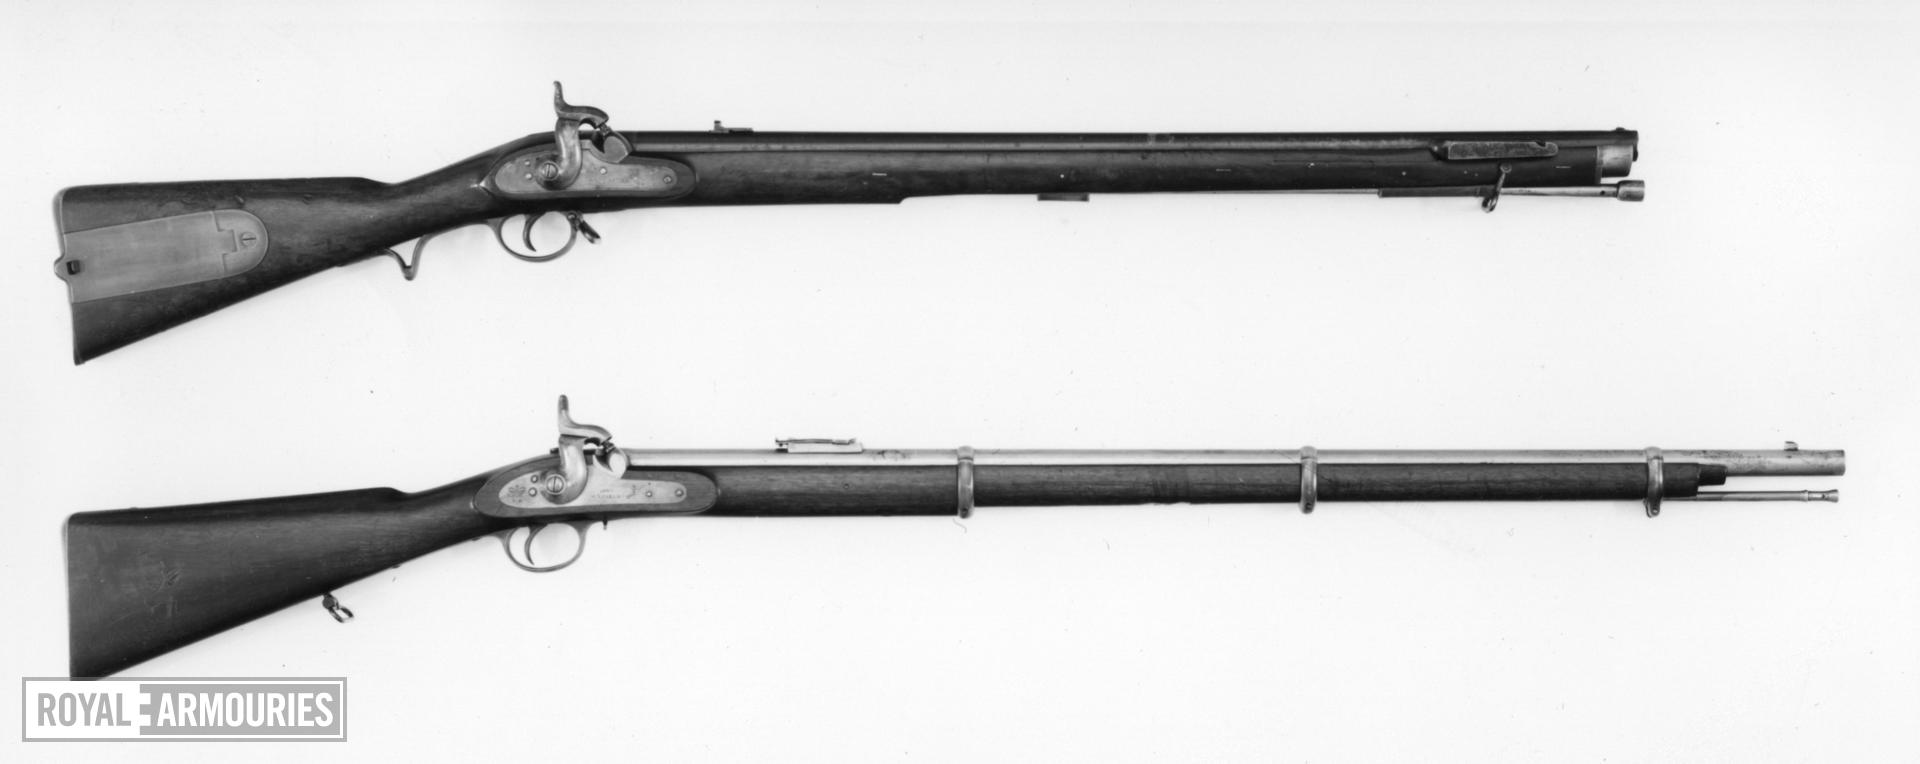 Percussion muzzle-loading military rifle - By Charles Lancaster